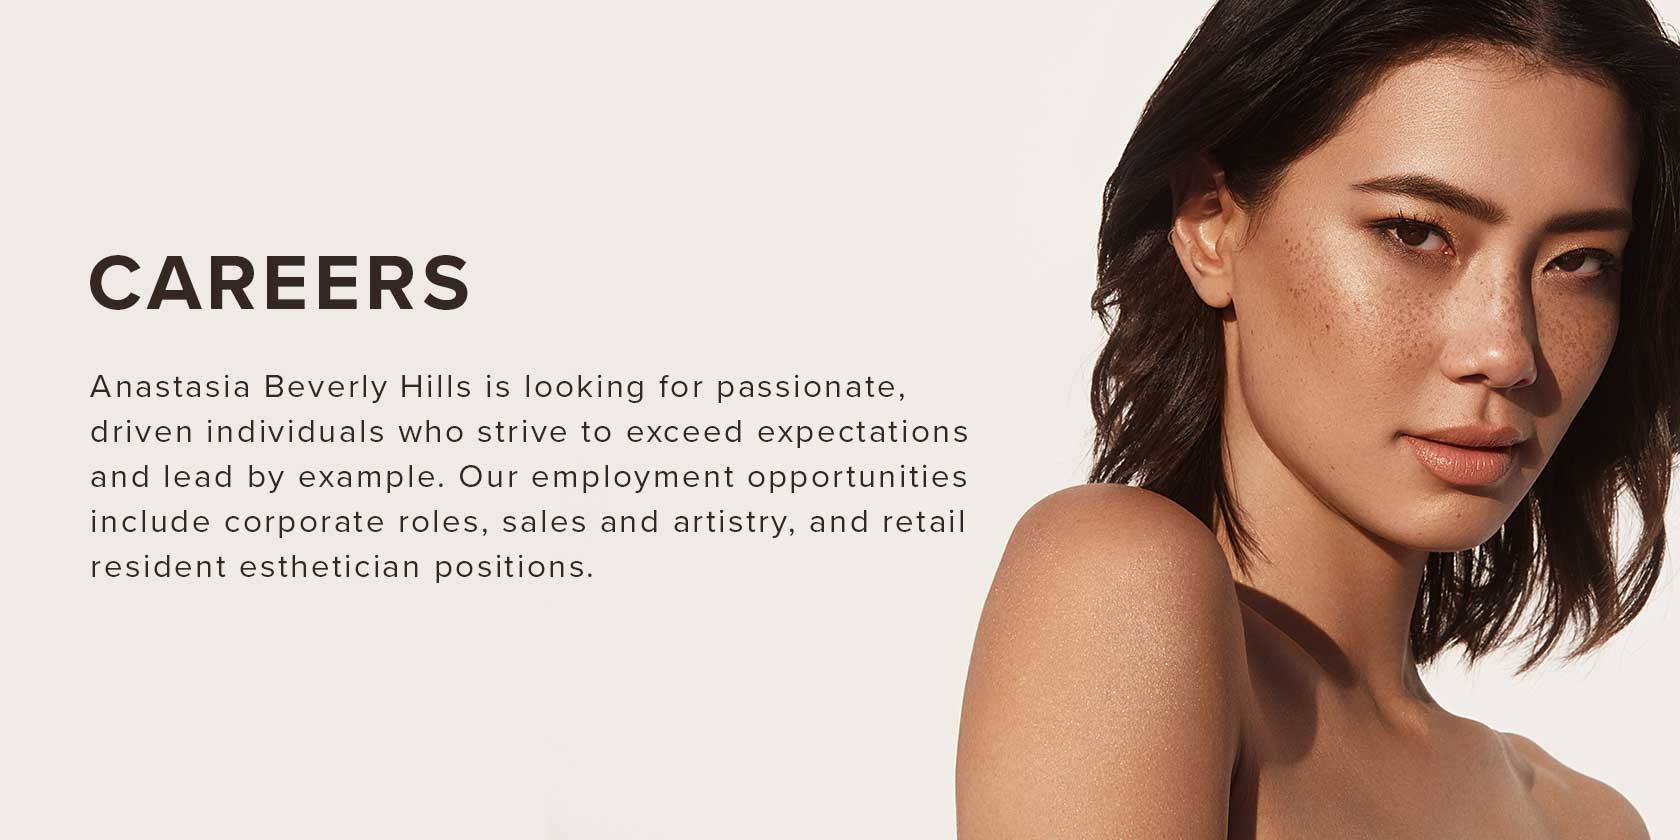 Anastasia Beverly Hills Career Opportunities